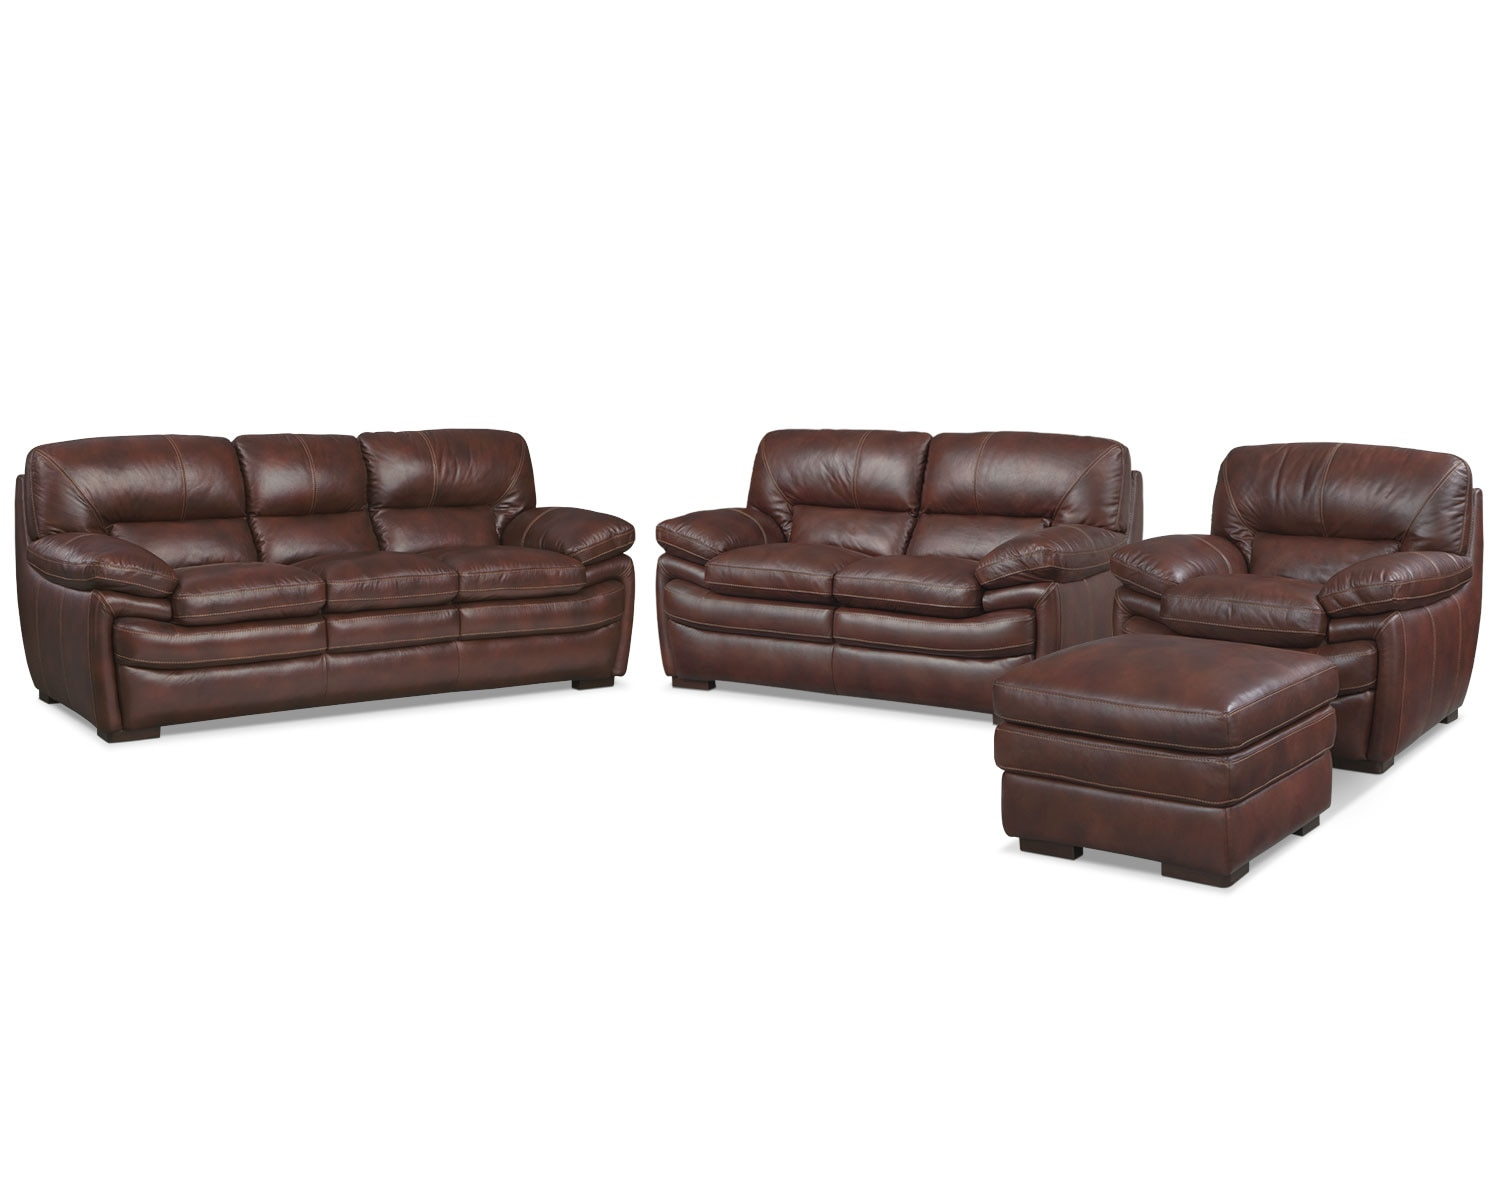 [The Peyton Chestnut Living Room Collection]